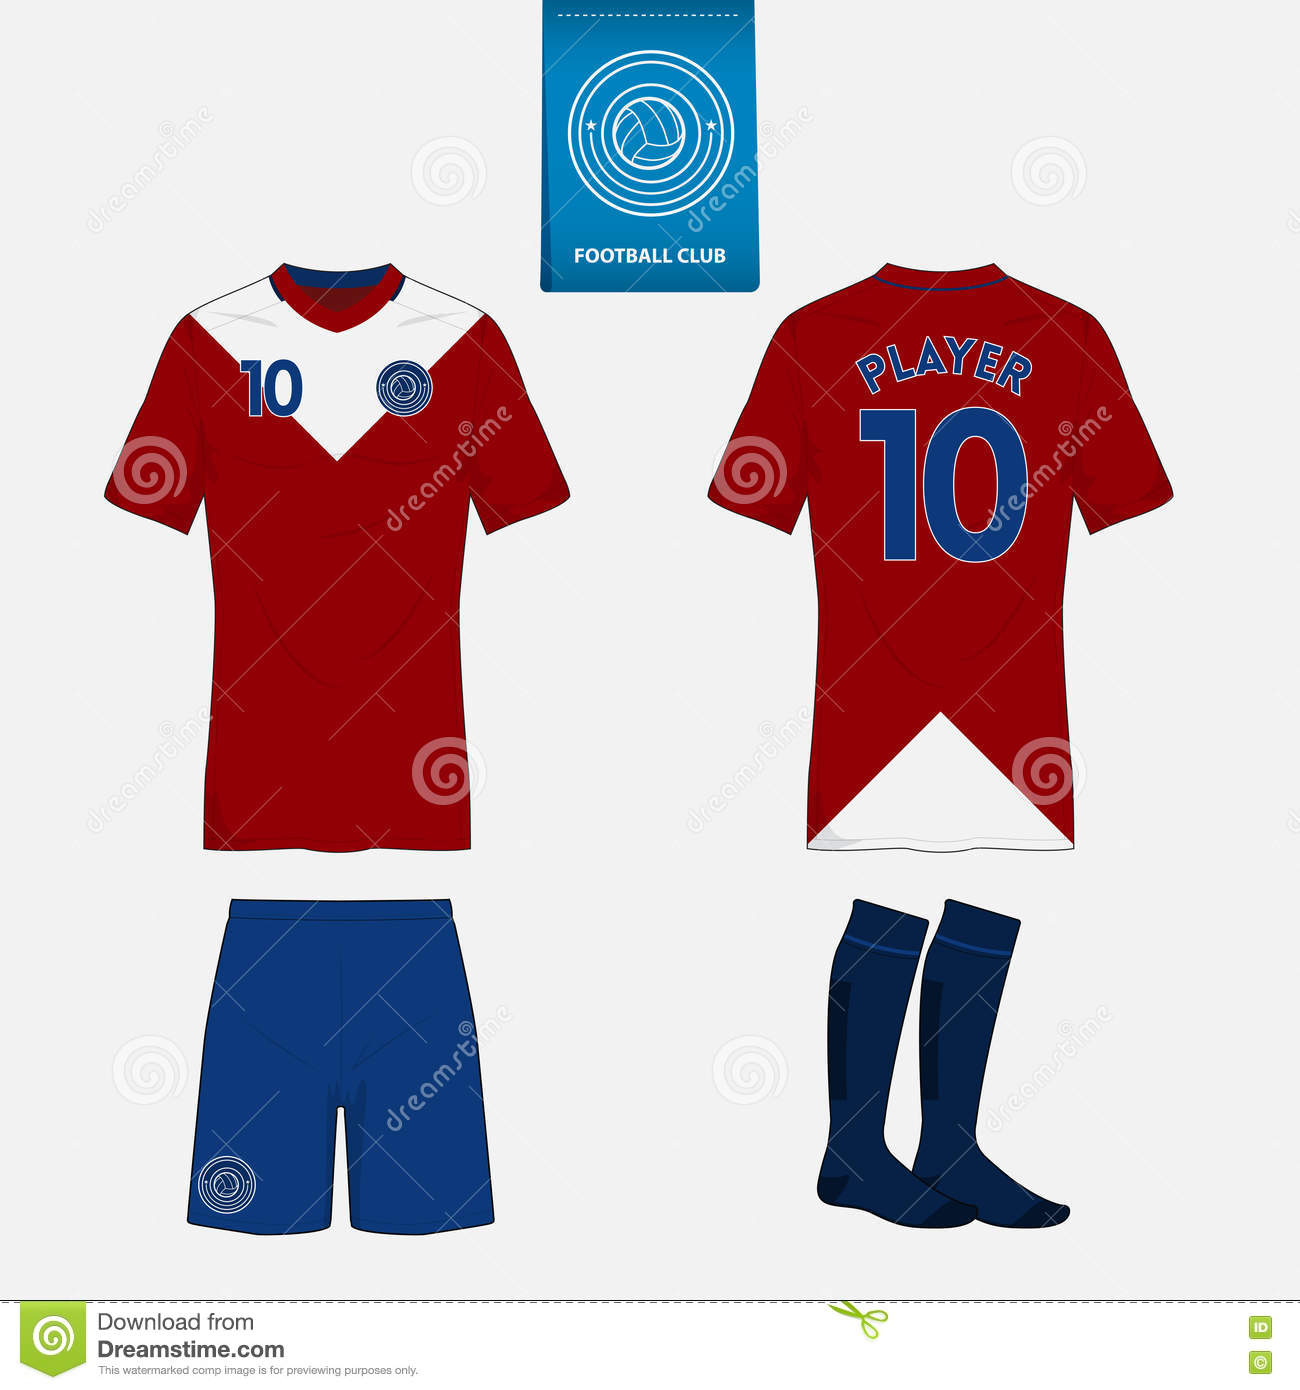 Set of soccer kit or football jersey template for football club. Flat  football logo on blue label. Front and back view. Football uniform. e217102e4